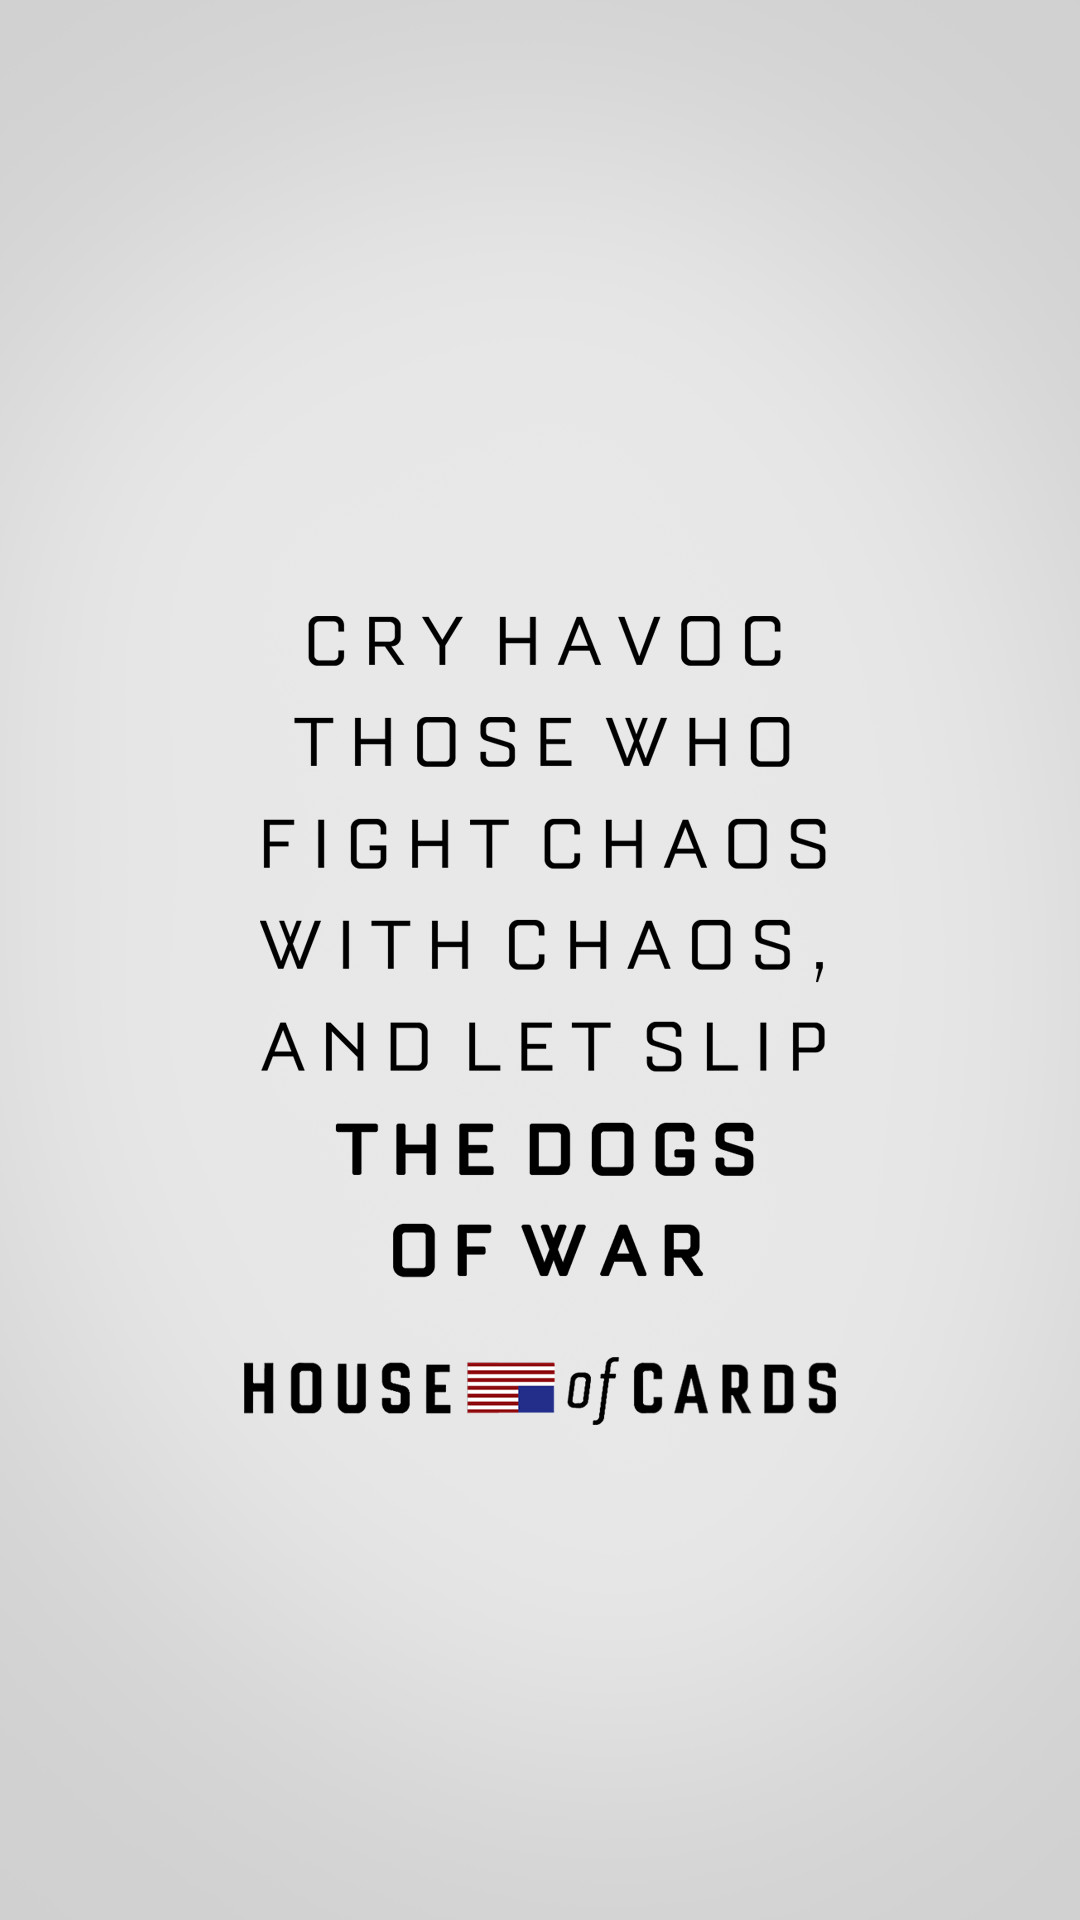 1080x1920 Made a House of Cards phone wallpaper for the upcoming season with my  favorite quote